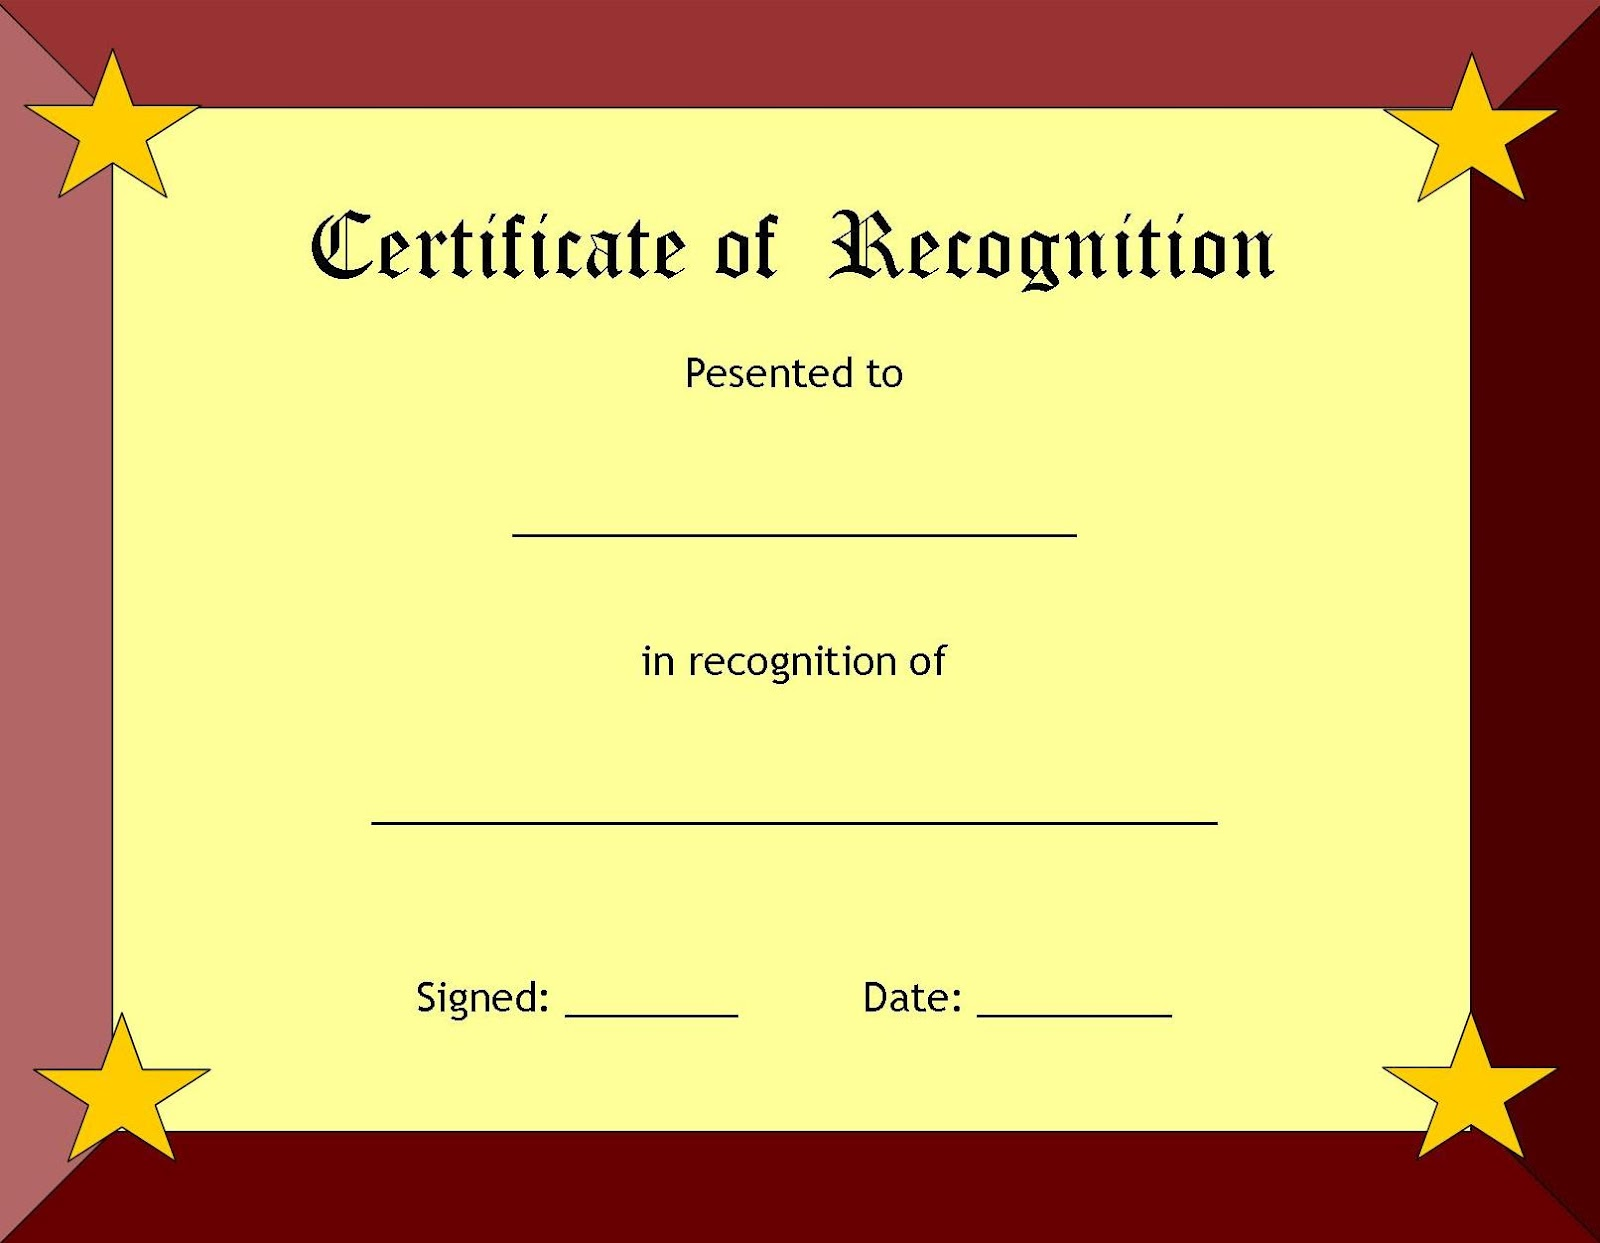 Appreciation certificate template microsoft word and templates wallpaper certificate of appreciation template in word yadclub Image collections